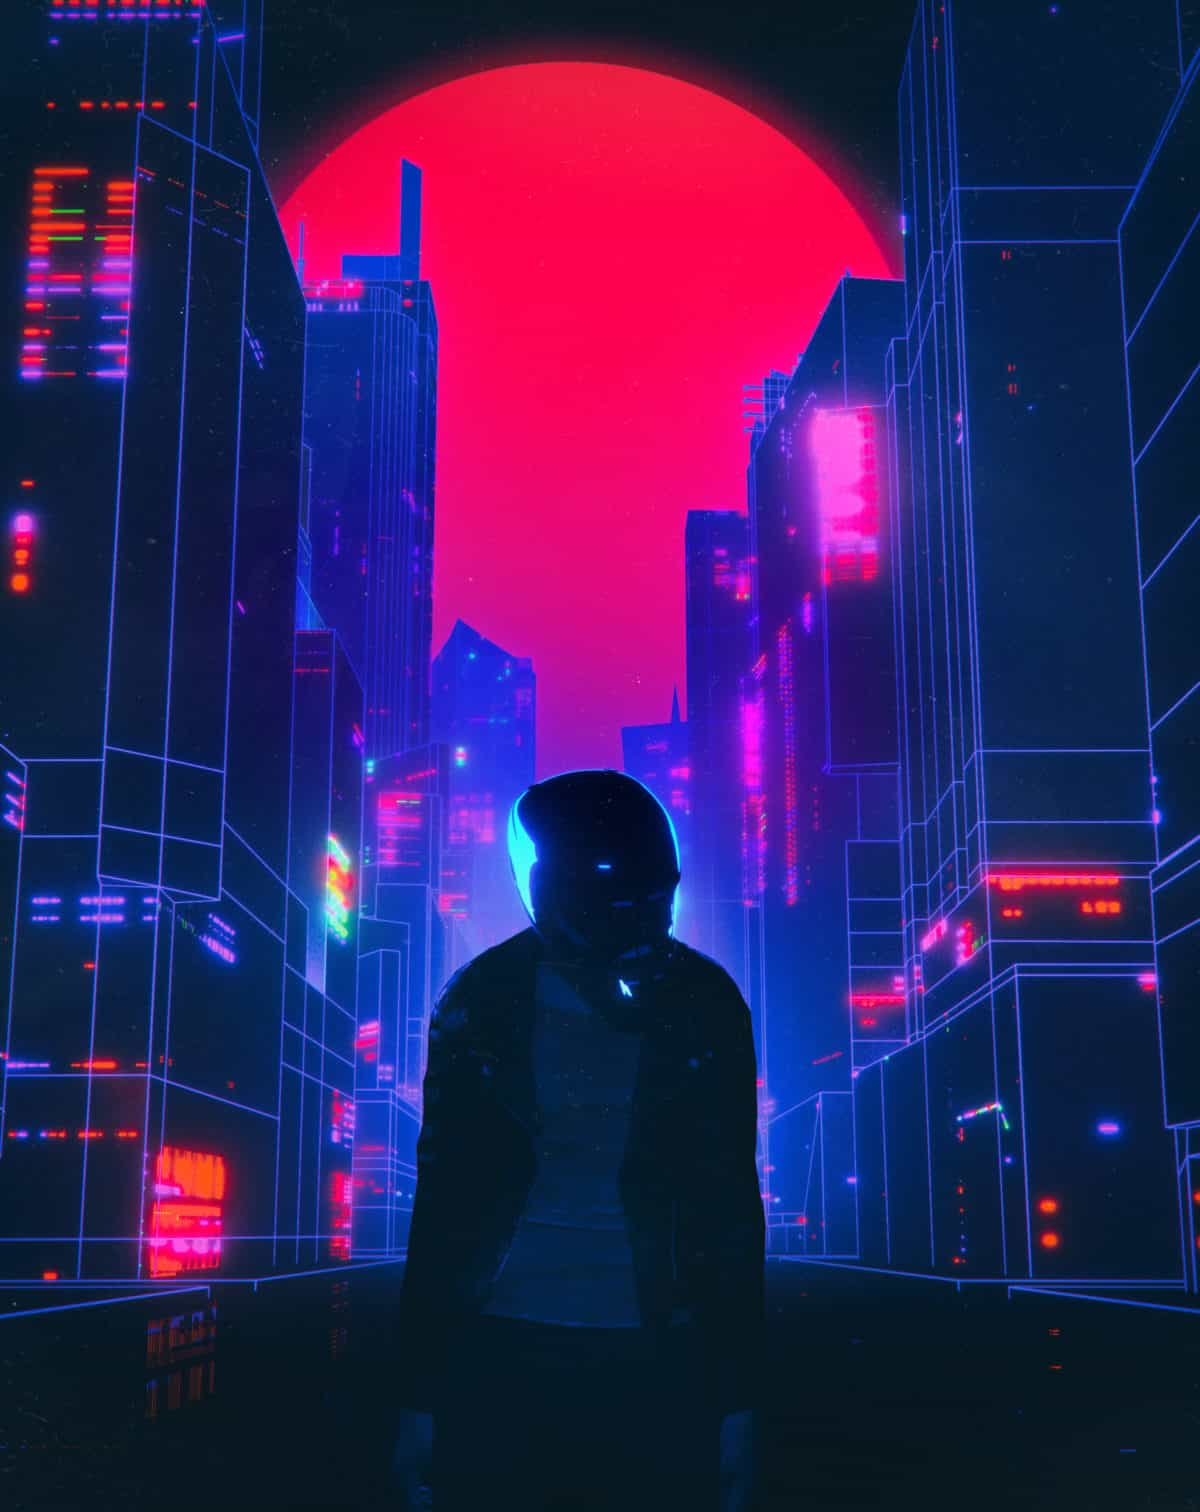 Digital artist Beeple